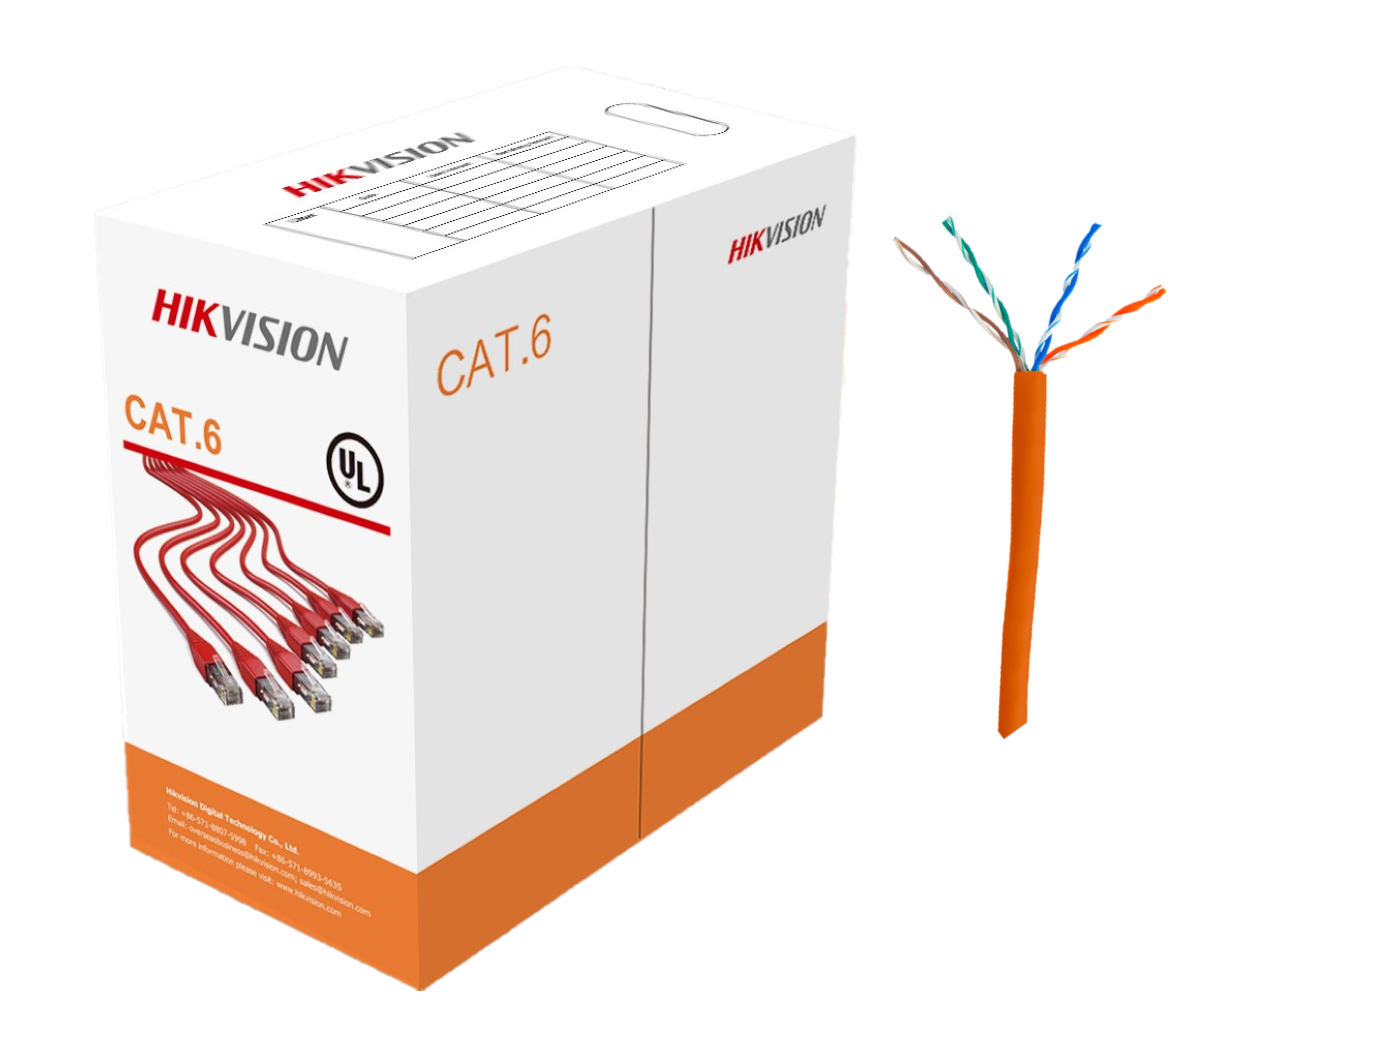 Hikvision U Utp Cat6 Pvc Sheath 305m